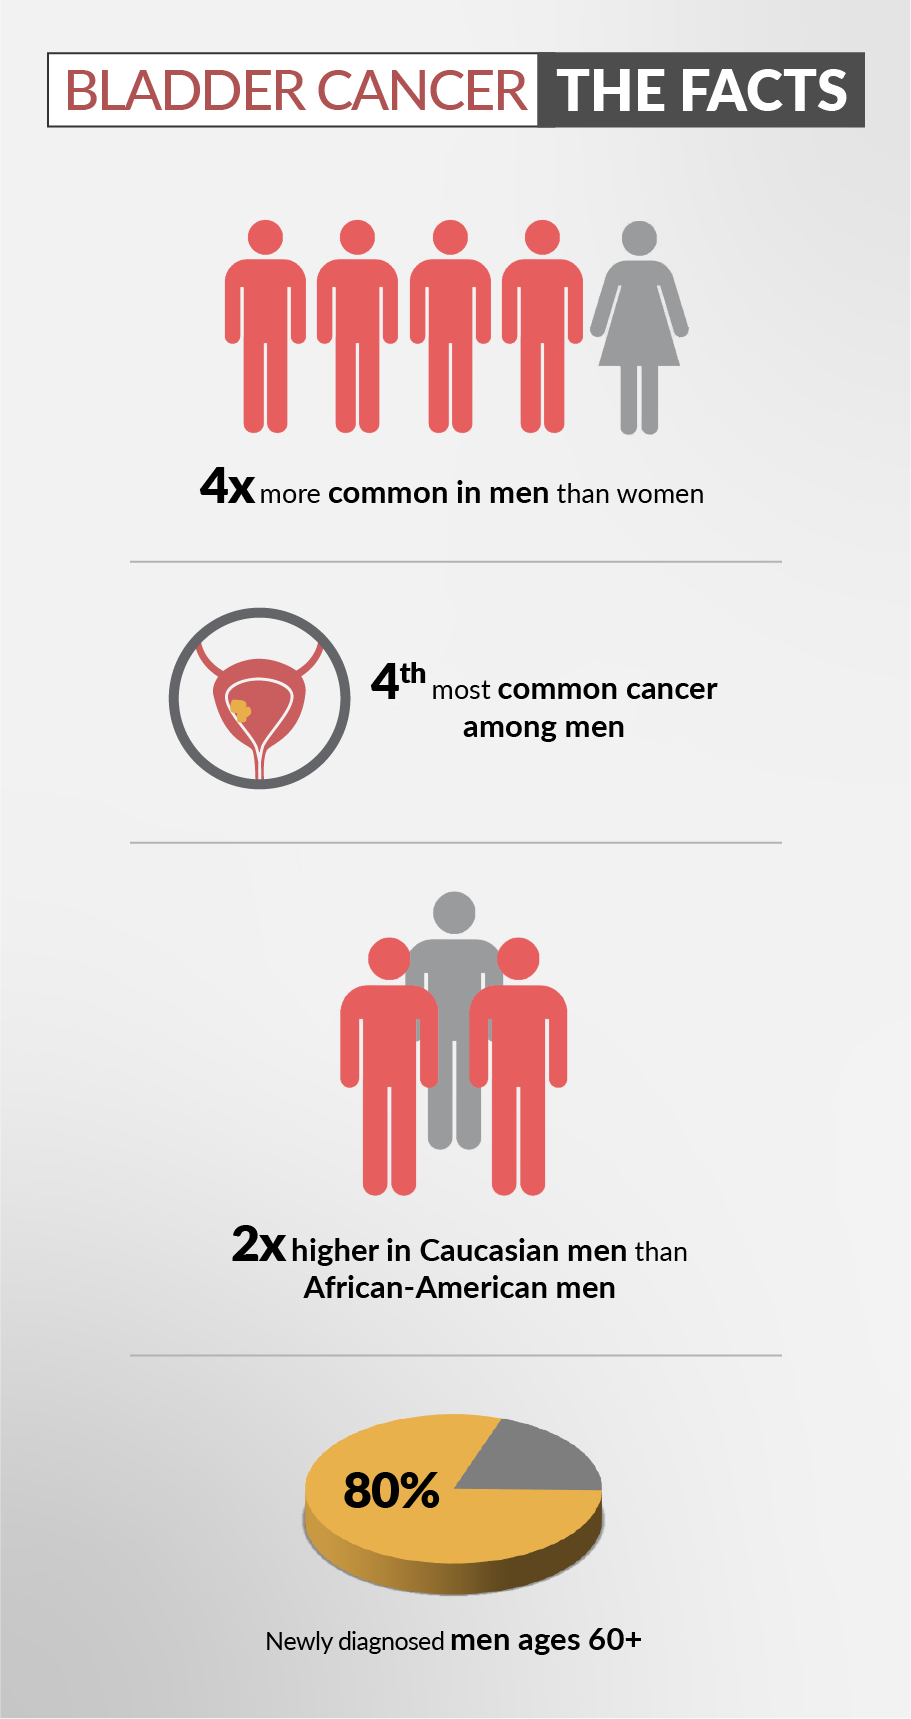 Bladder Cancer: The Facts